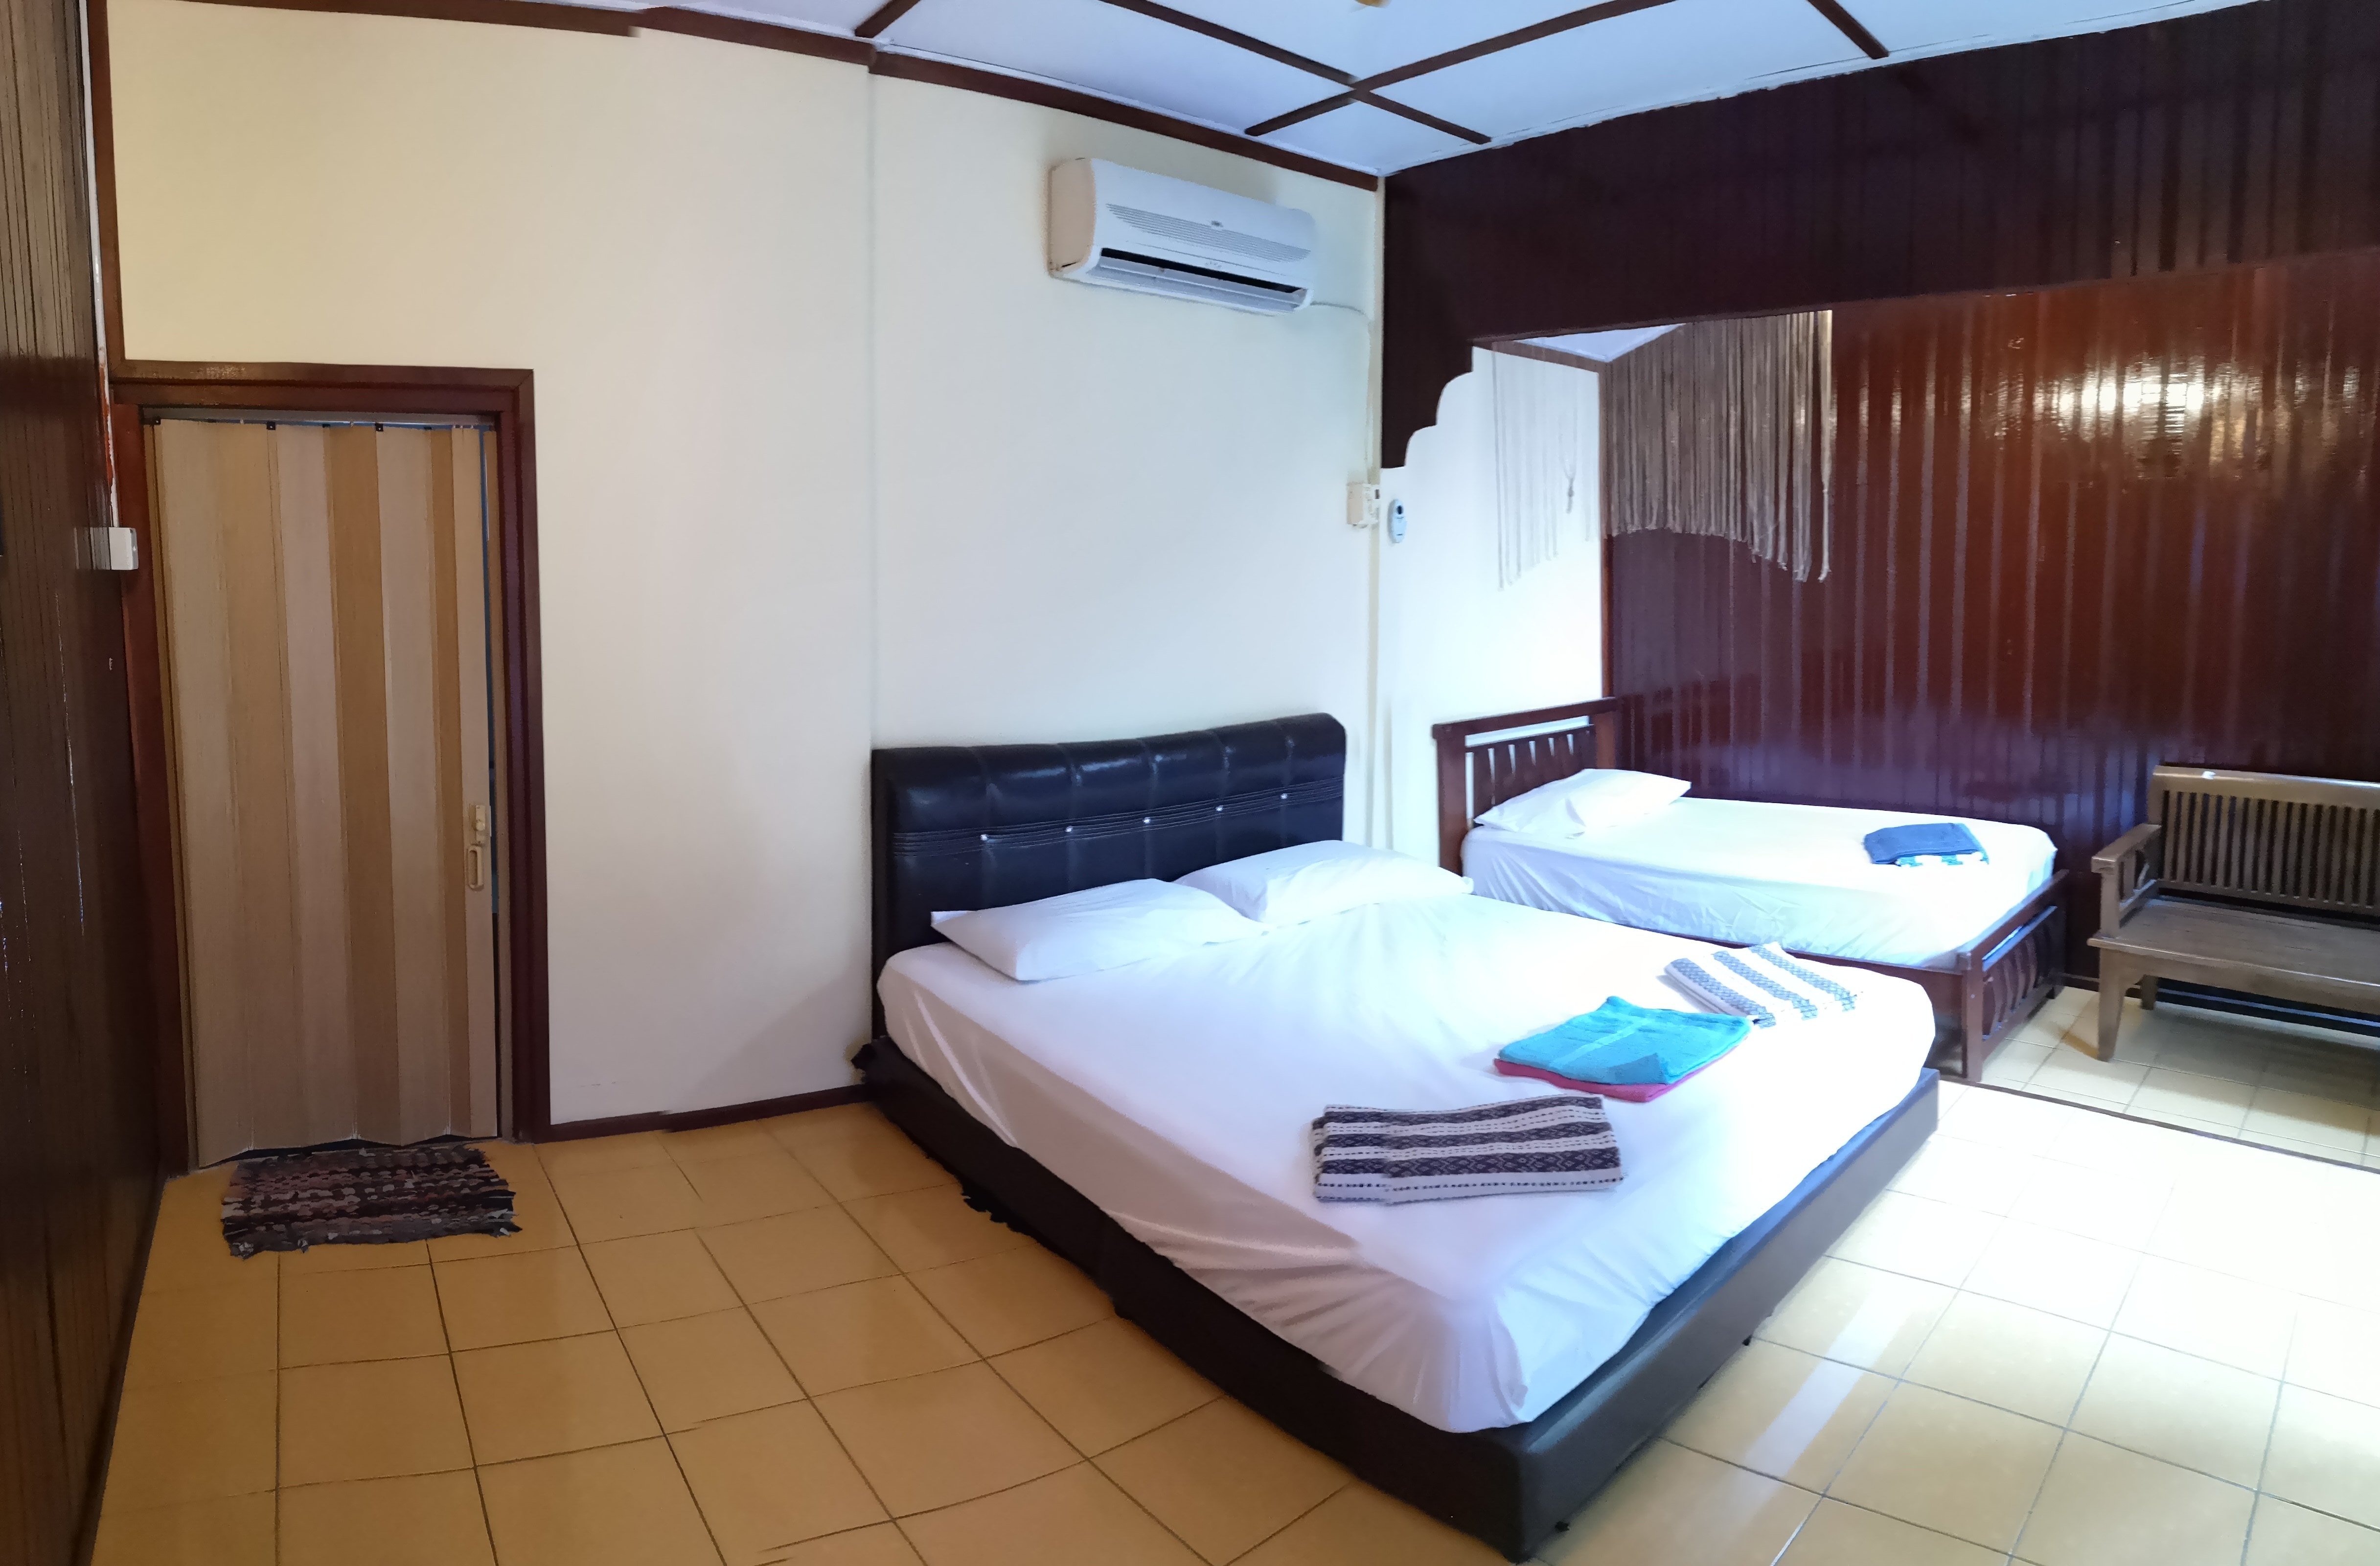 DOUBLE + SINGLE ROOM 2